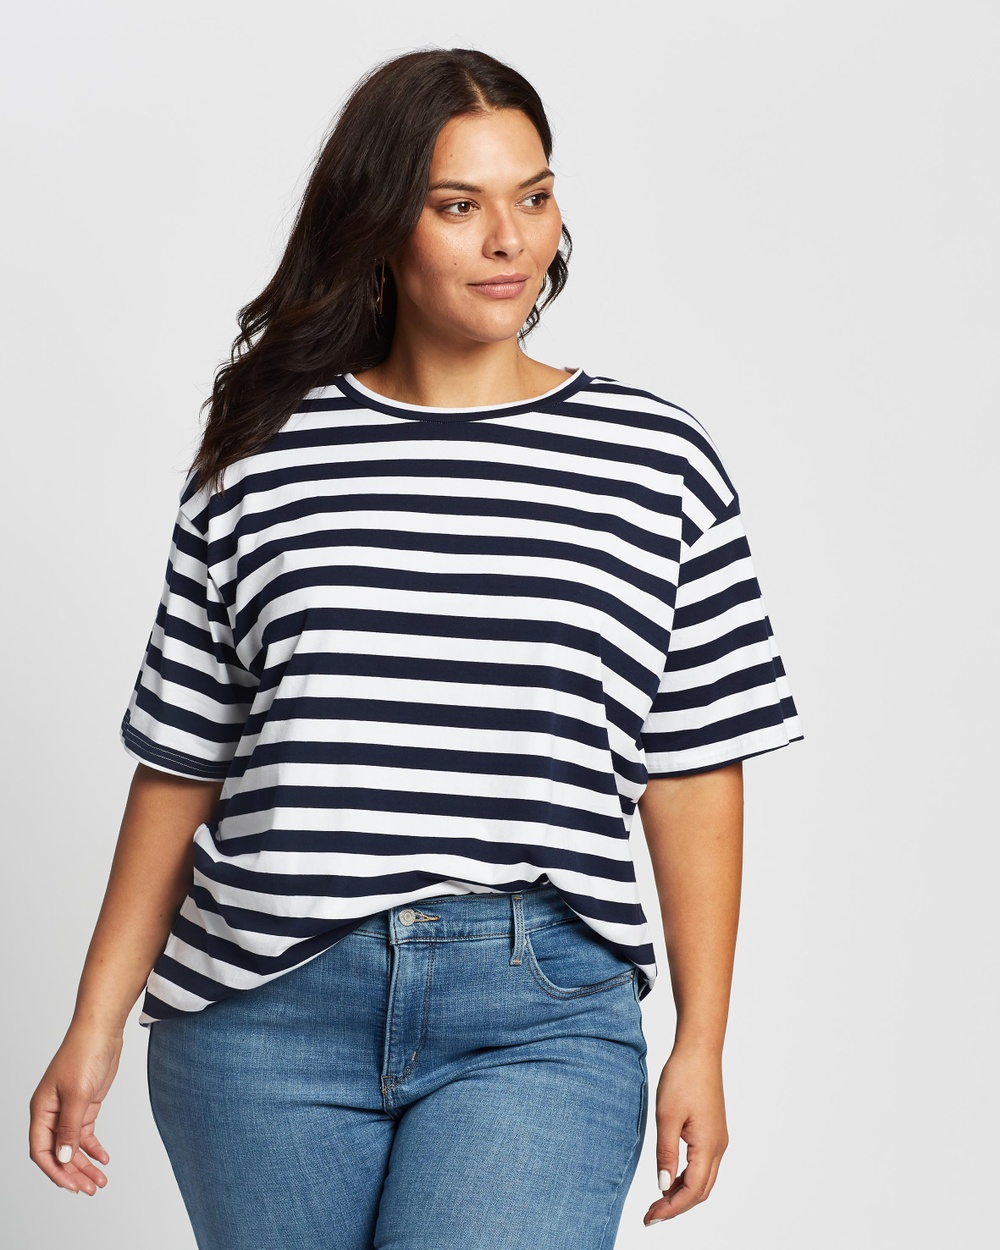 Atmos&Here Curvy - Harry Boyfriend Tee - T-Shirts & Singlets (Navy & White Stripe) Harry Boyfriend Tee